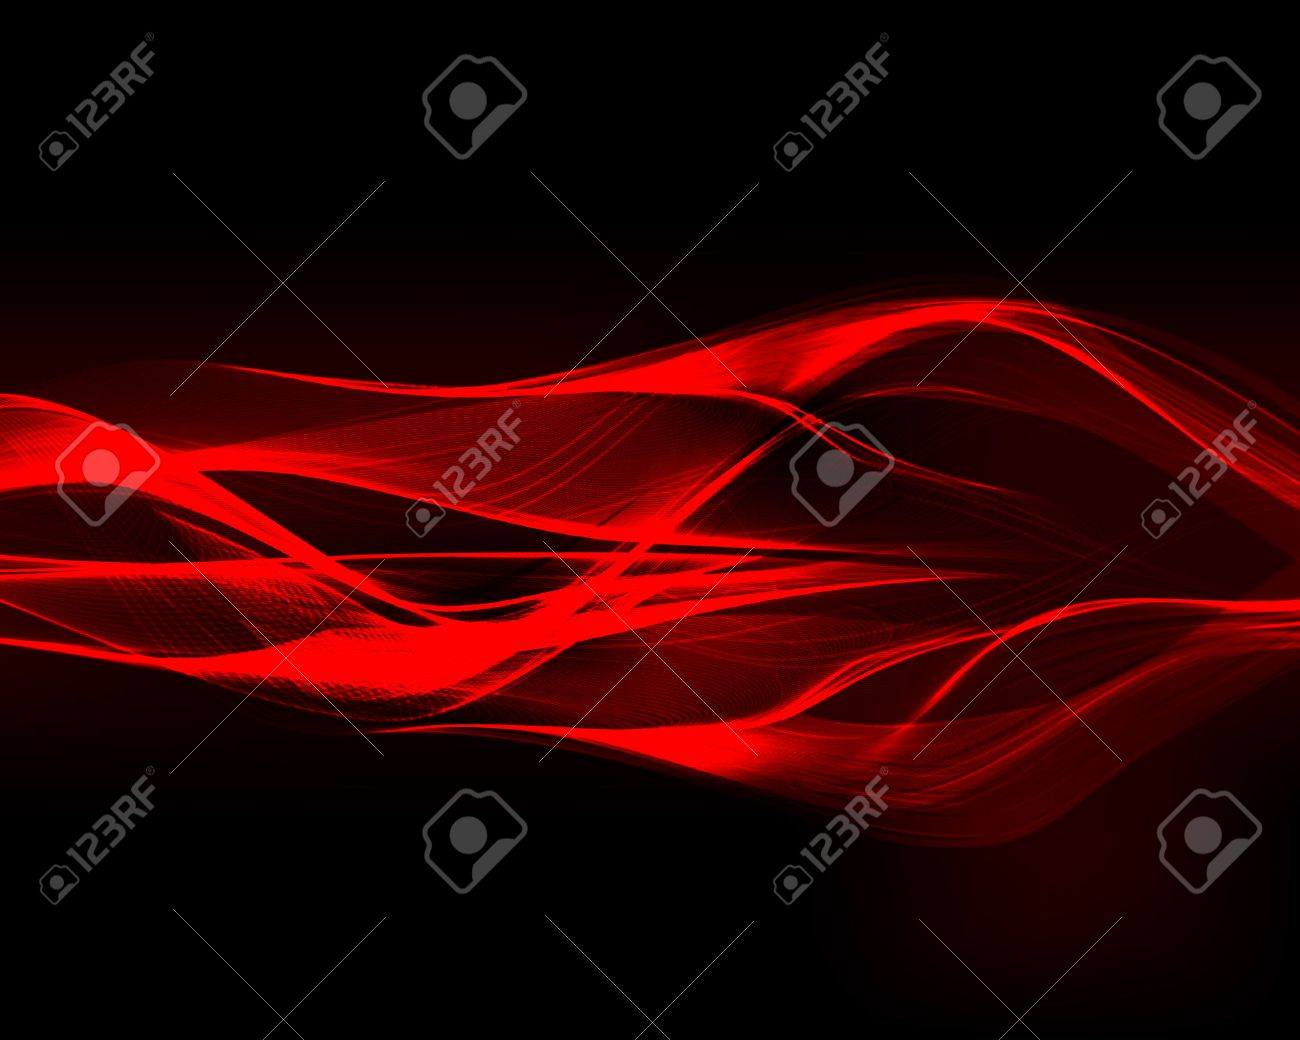 Abstract red waves on the dark background. Vector illustration. - 37492248